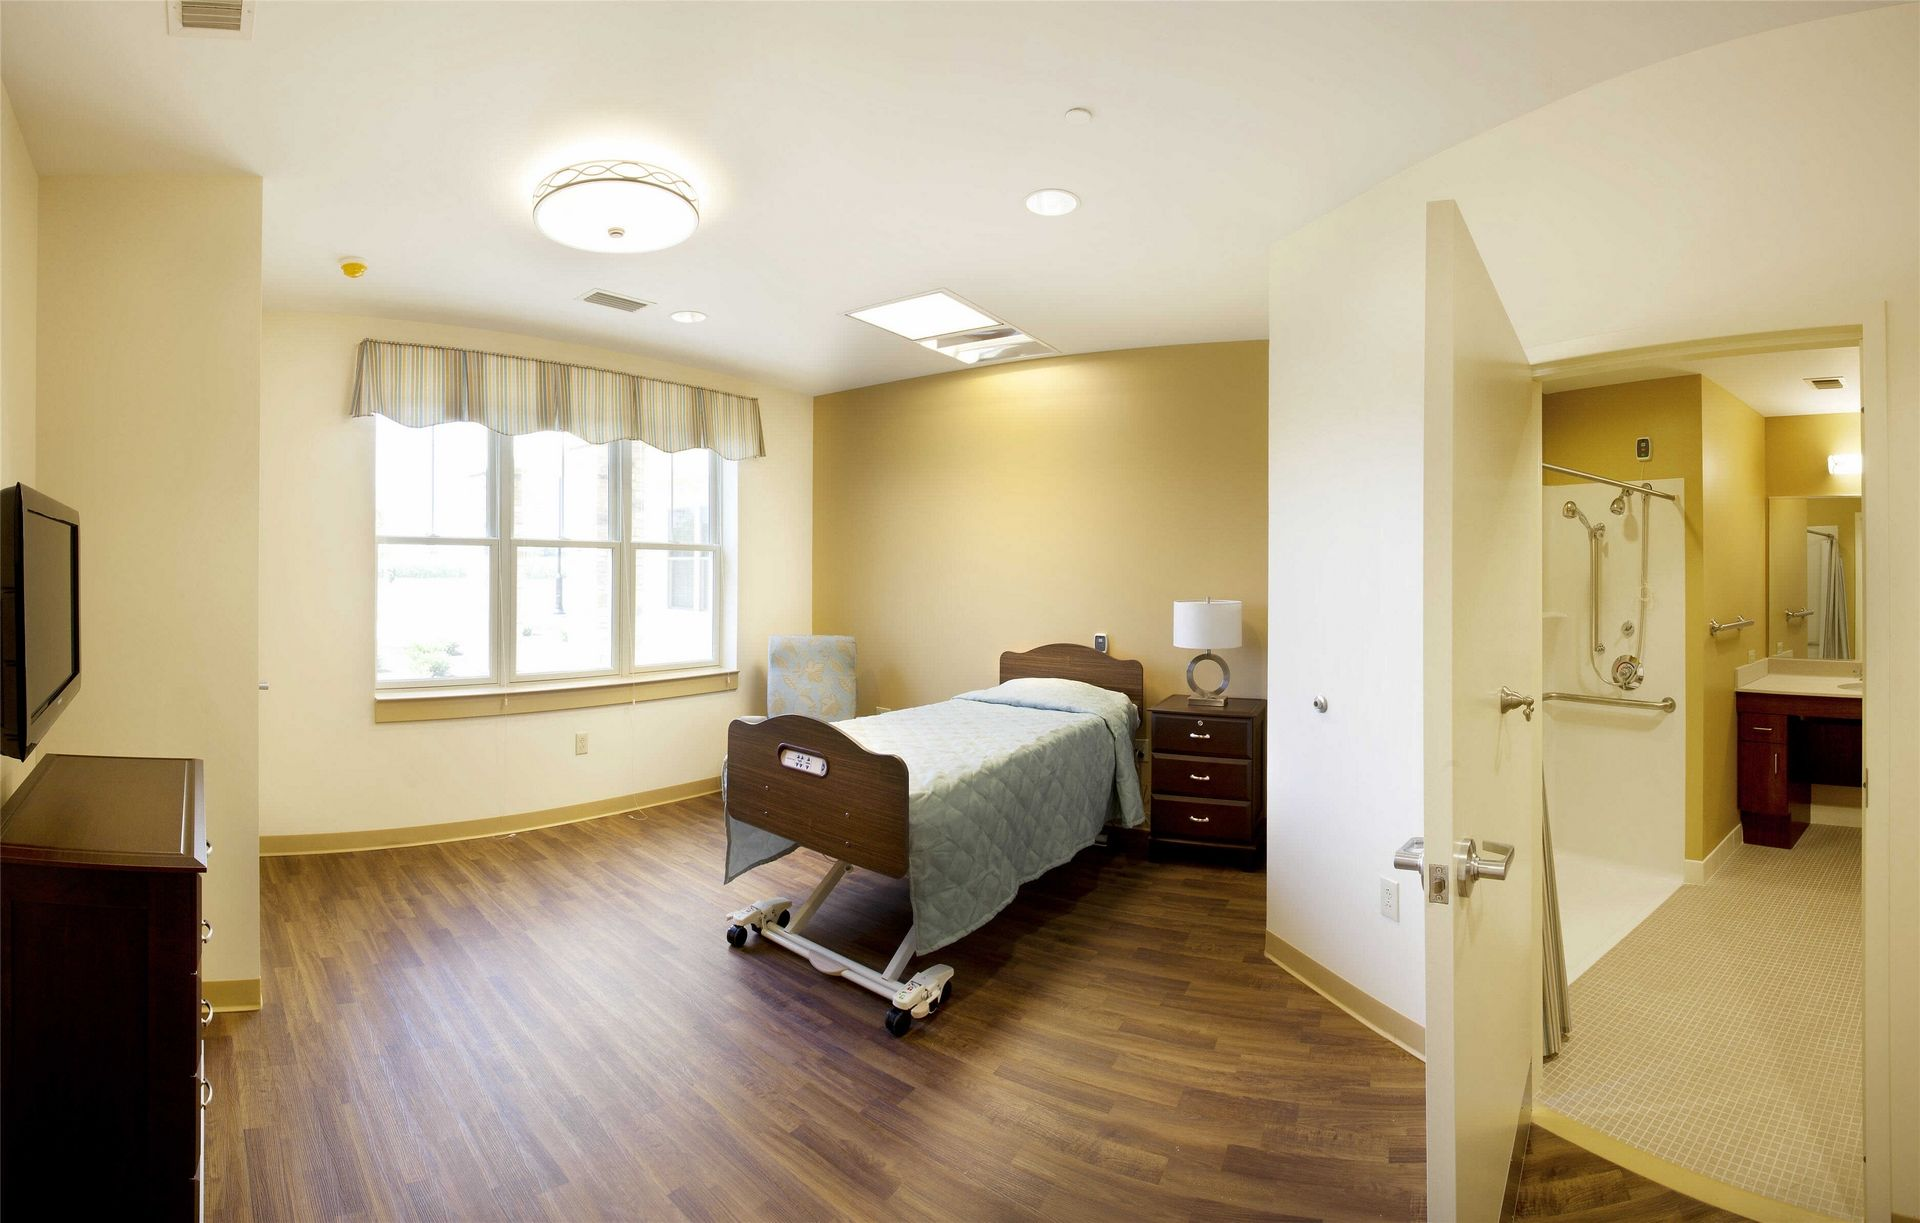 Kahl Home Skilled Nursing Design Private Room